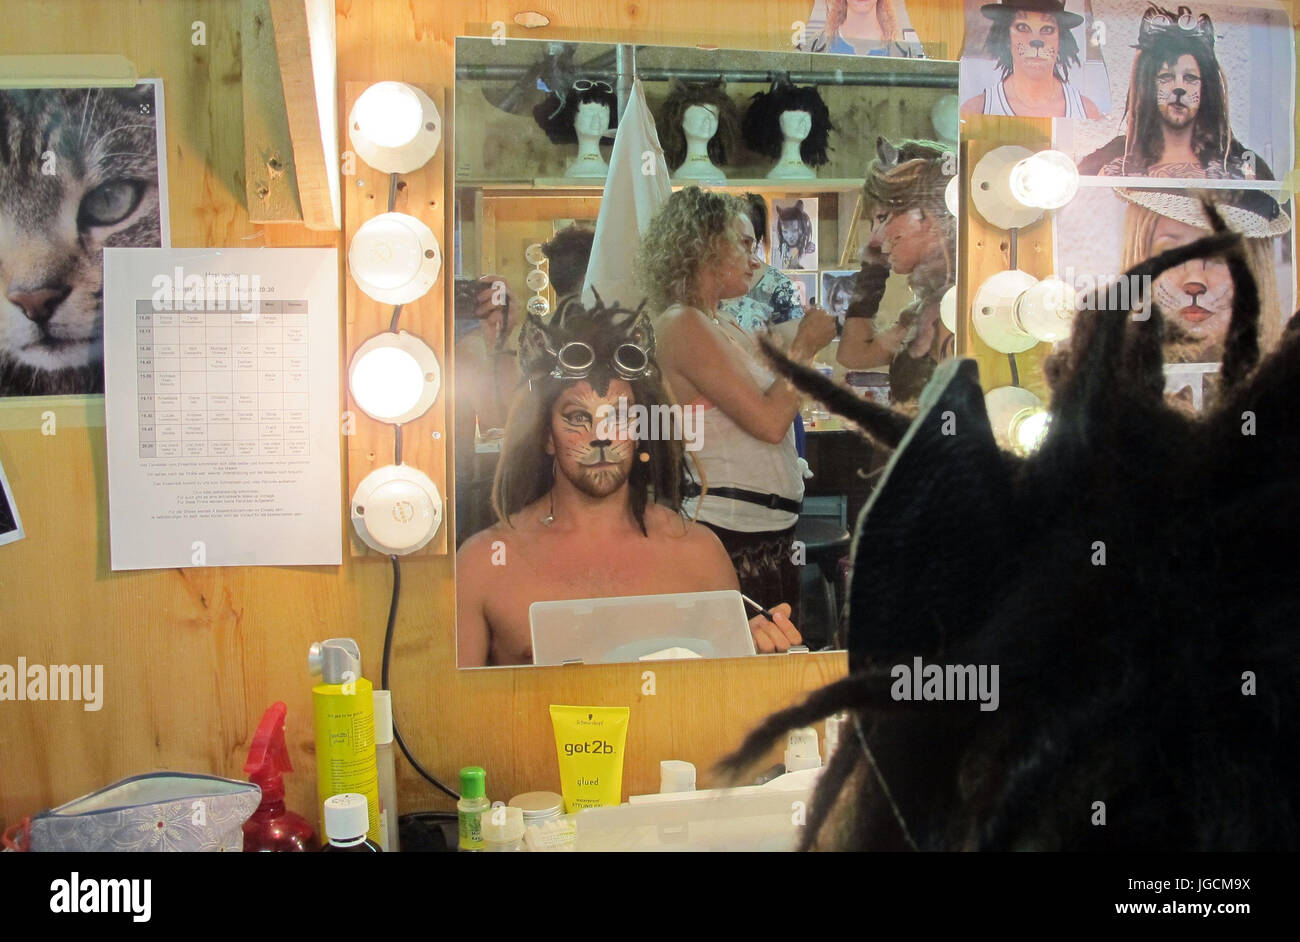 Christiane Stockfotos & Christiane Bilder - Seite 14 - Alamy